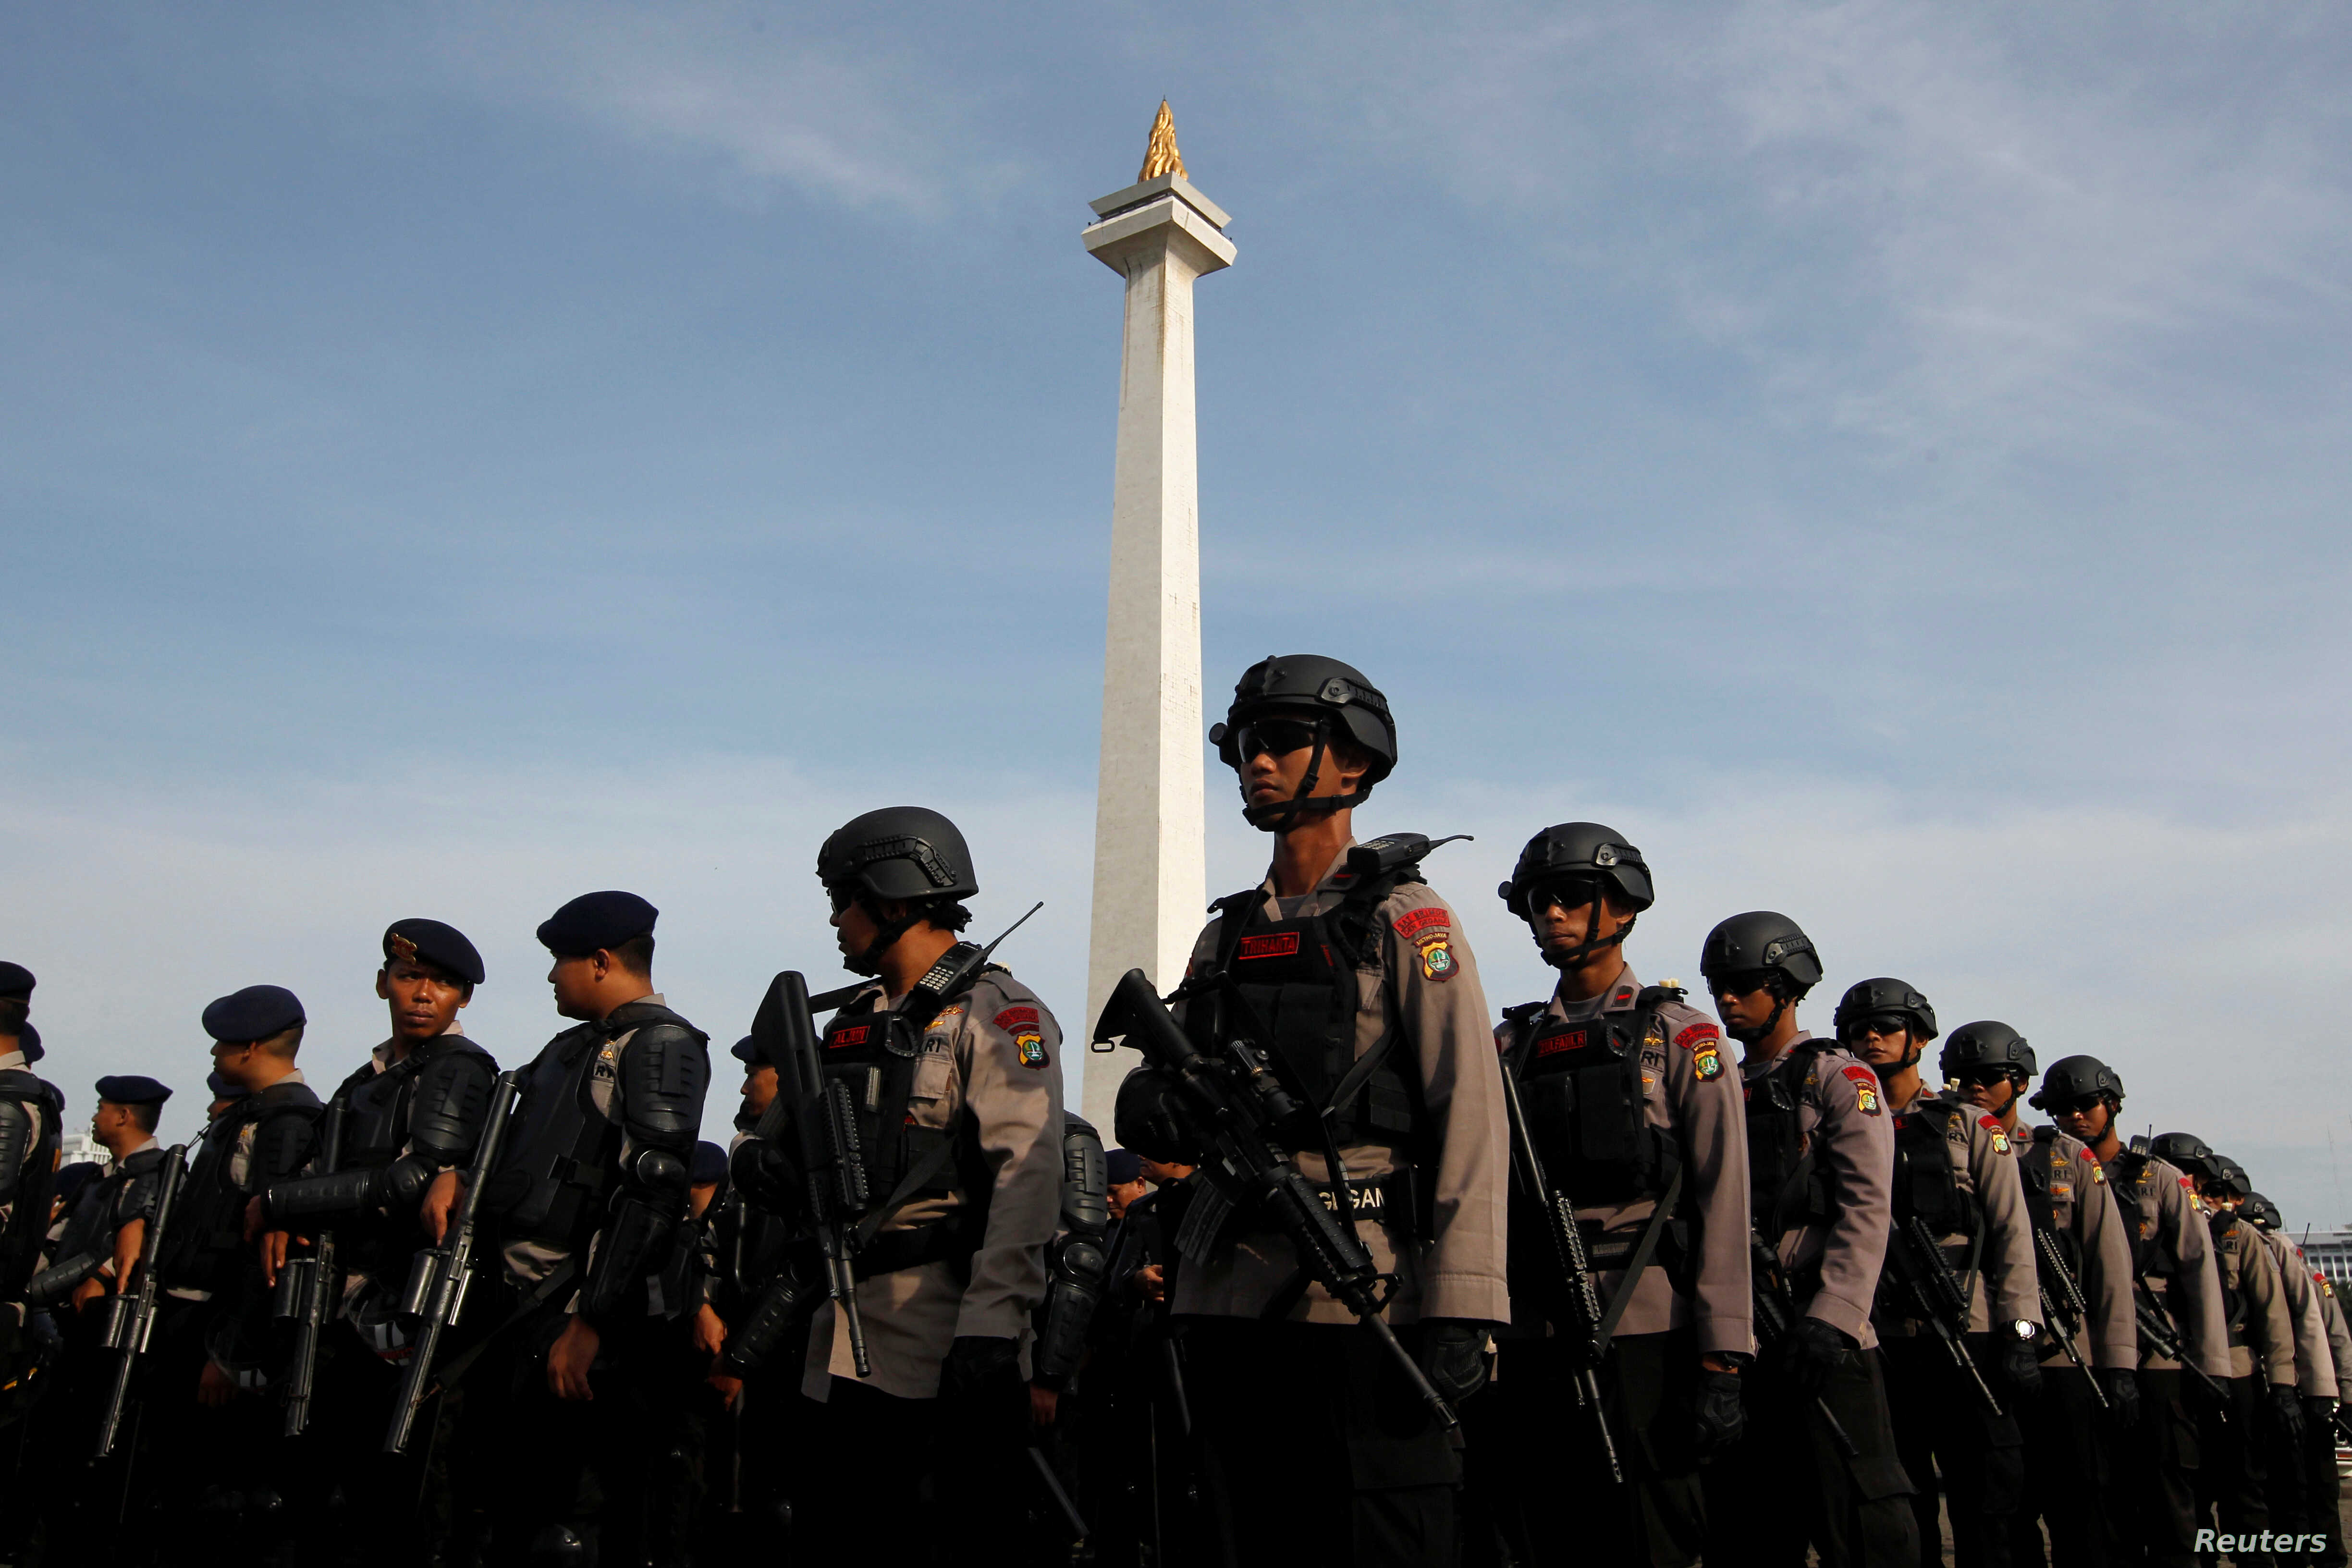 Anti-riot police stand during security preparations ahead of Friday's planned protest by hard-line Muslim groups in Jakarta, Indonesia, Nov. 2, 2016.